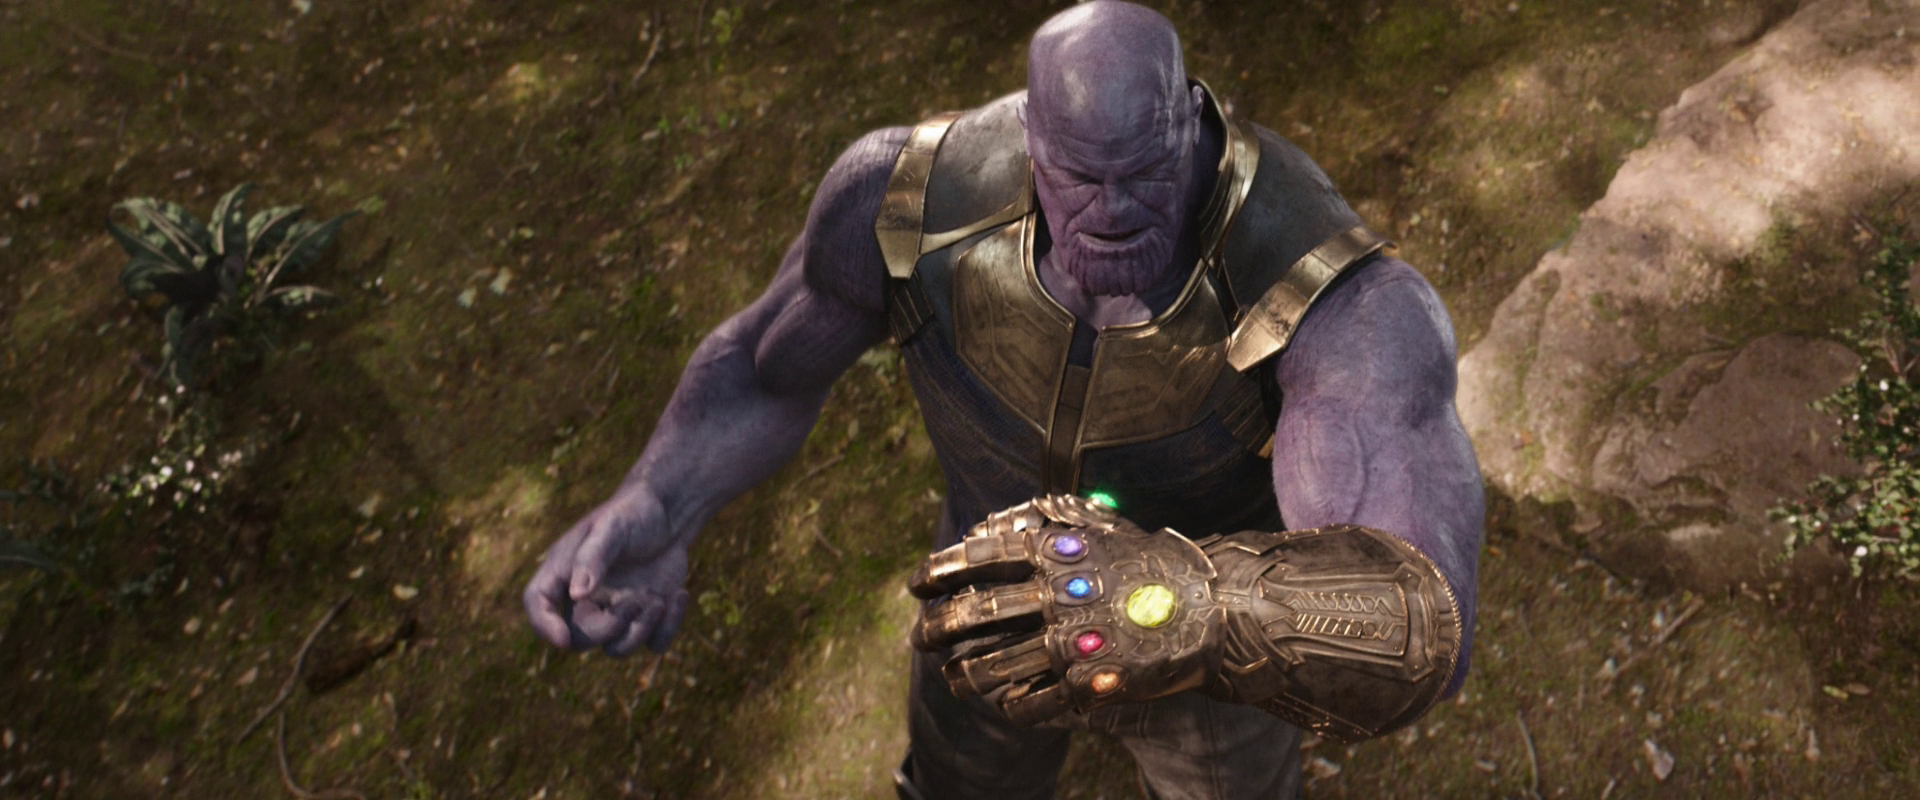 Josh Brolin plays supervillain Thanos in the Marvel Cinematic Universe films. The first 22 feature films in the series make up the Infinity Saga, concluding with  Avengers: Endgame.  Image courtesy of Walt Disney Pictures.